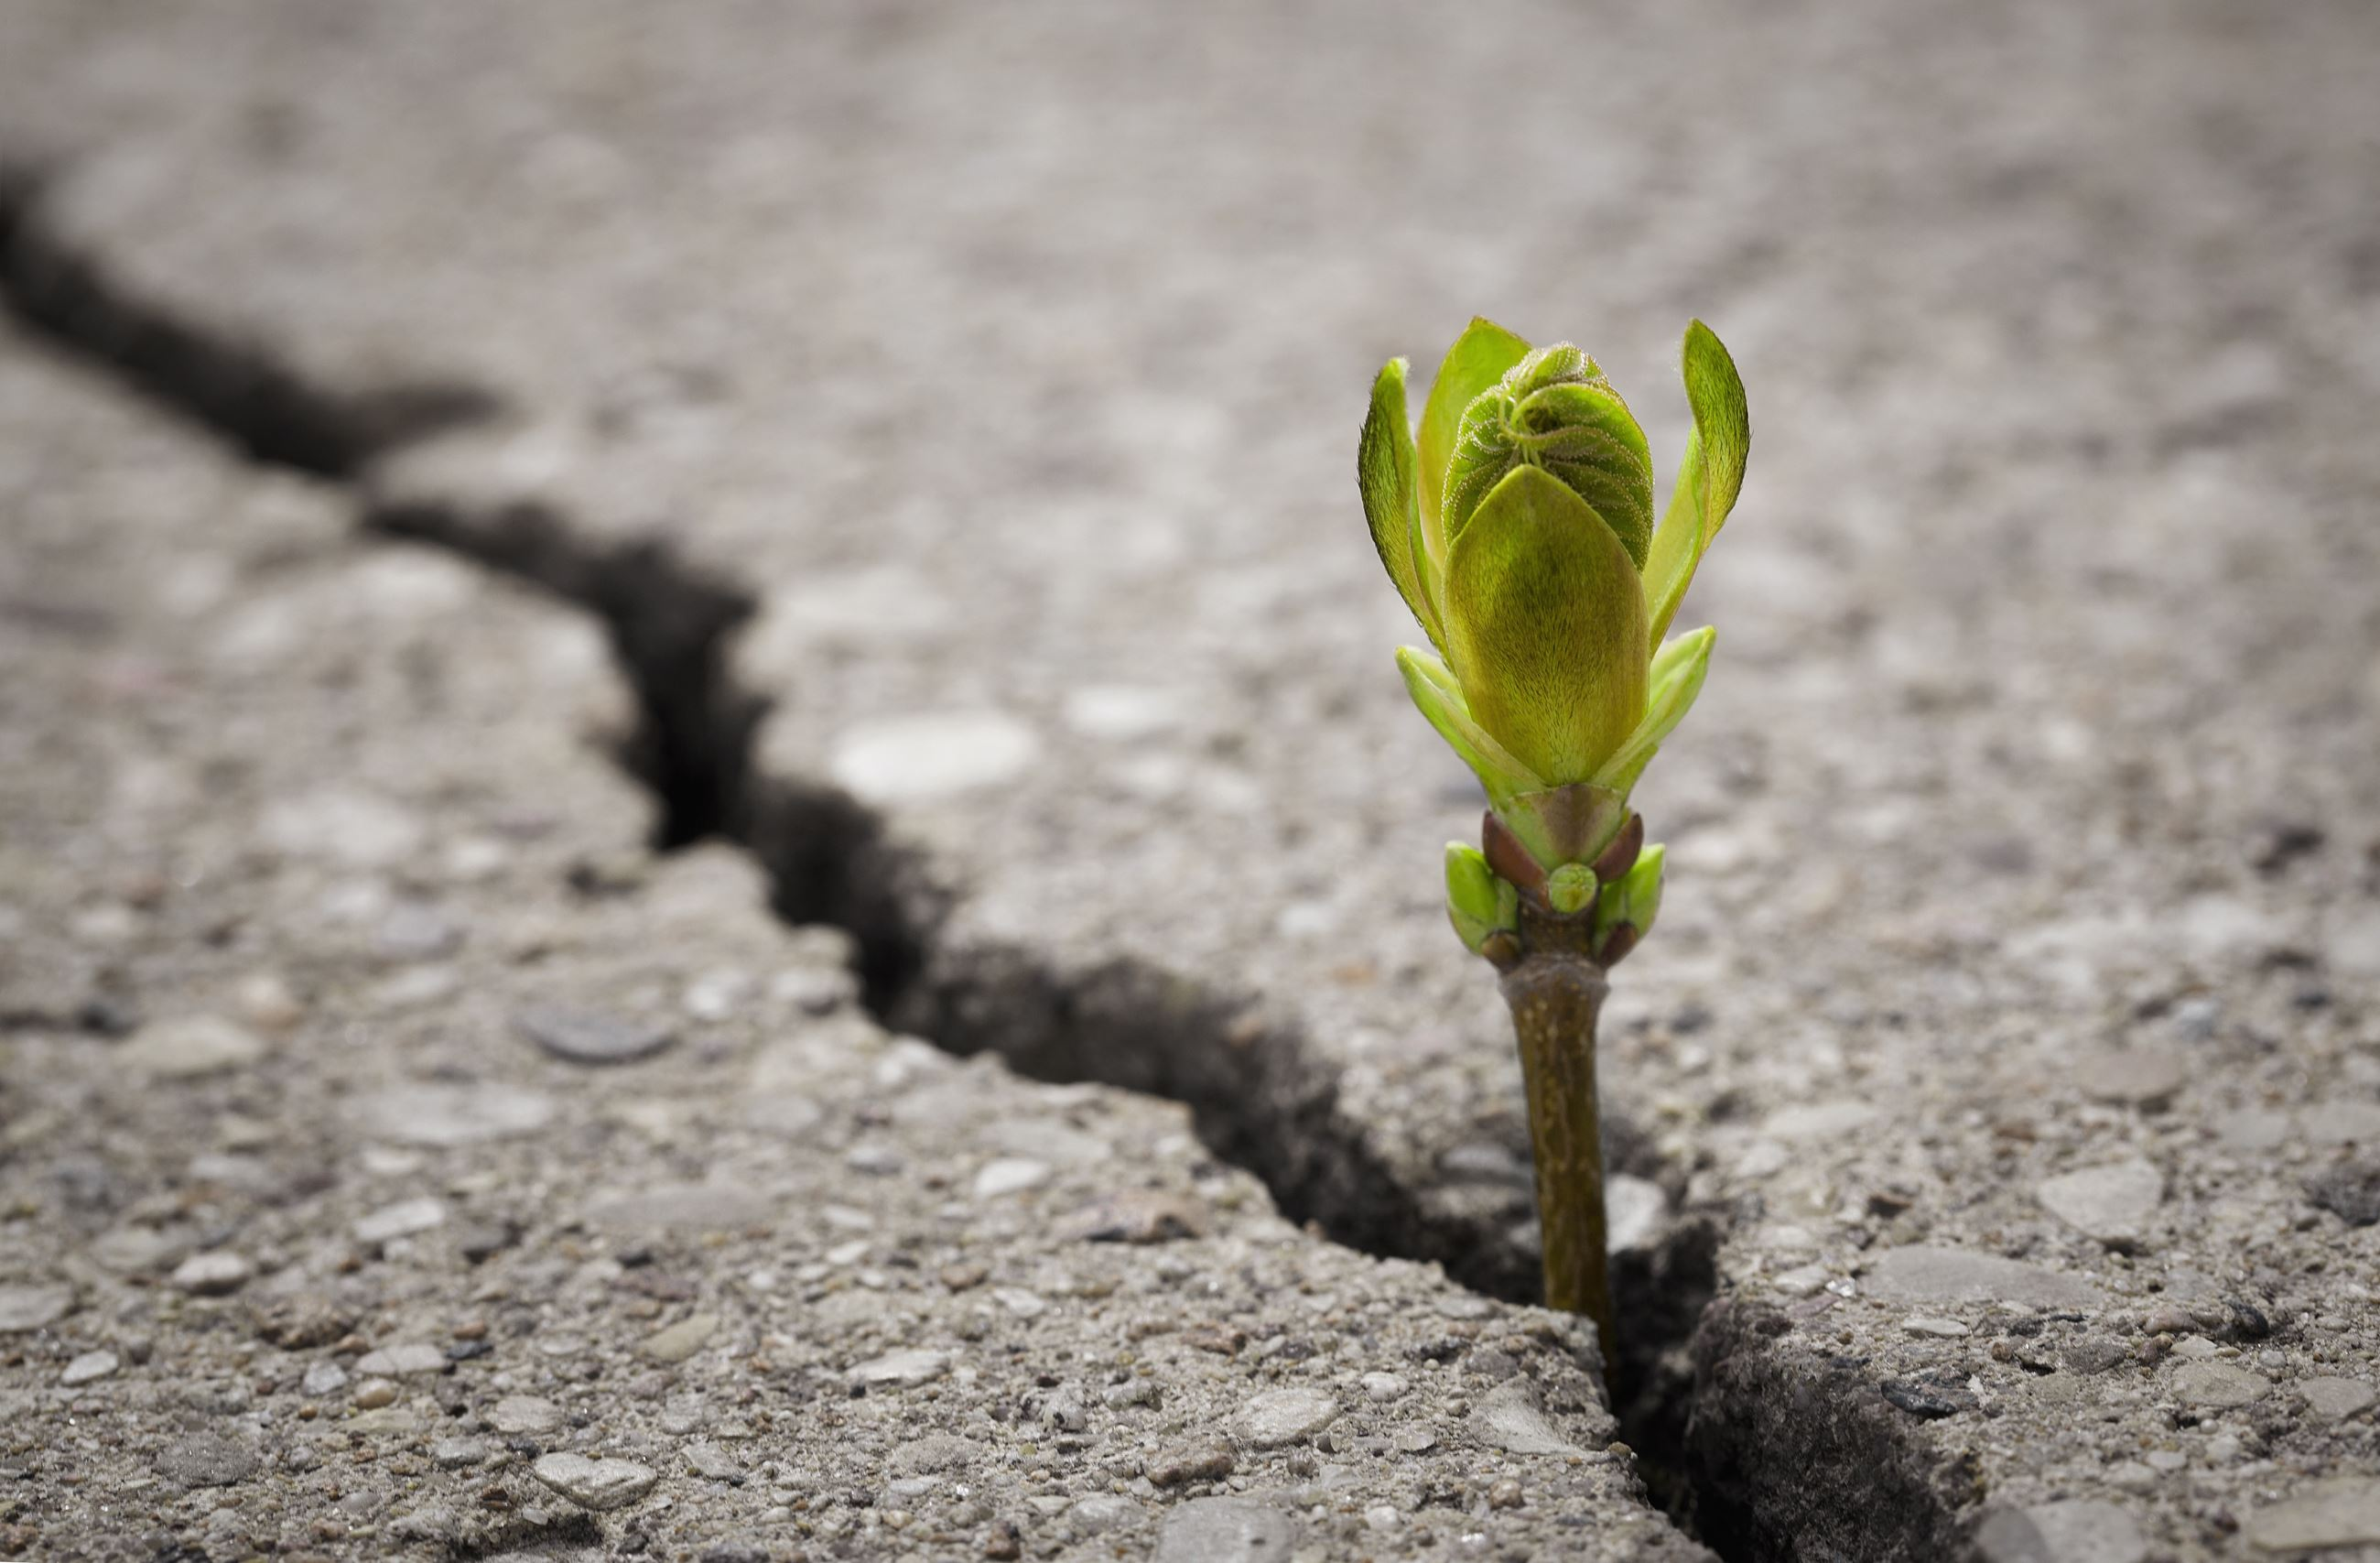 Small green plant emerging through a crack in a paved sidewalk